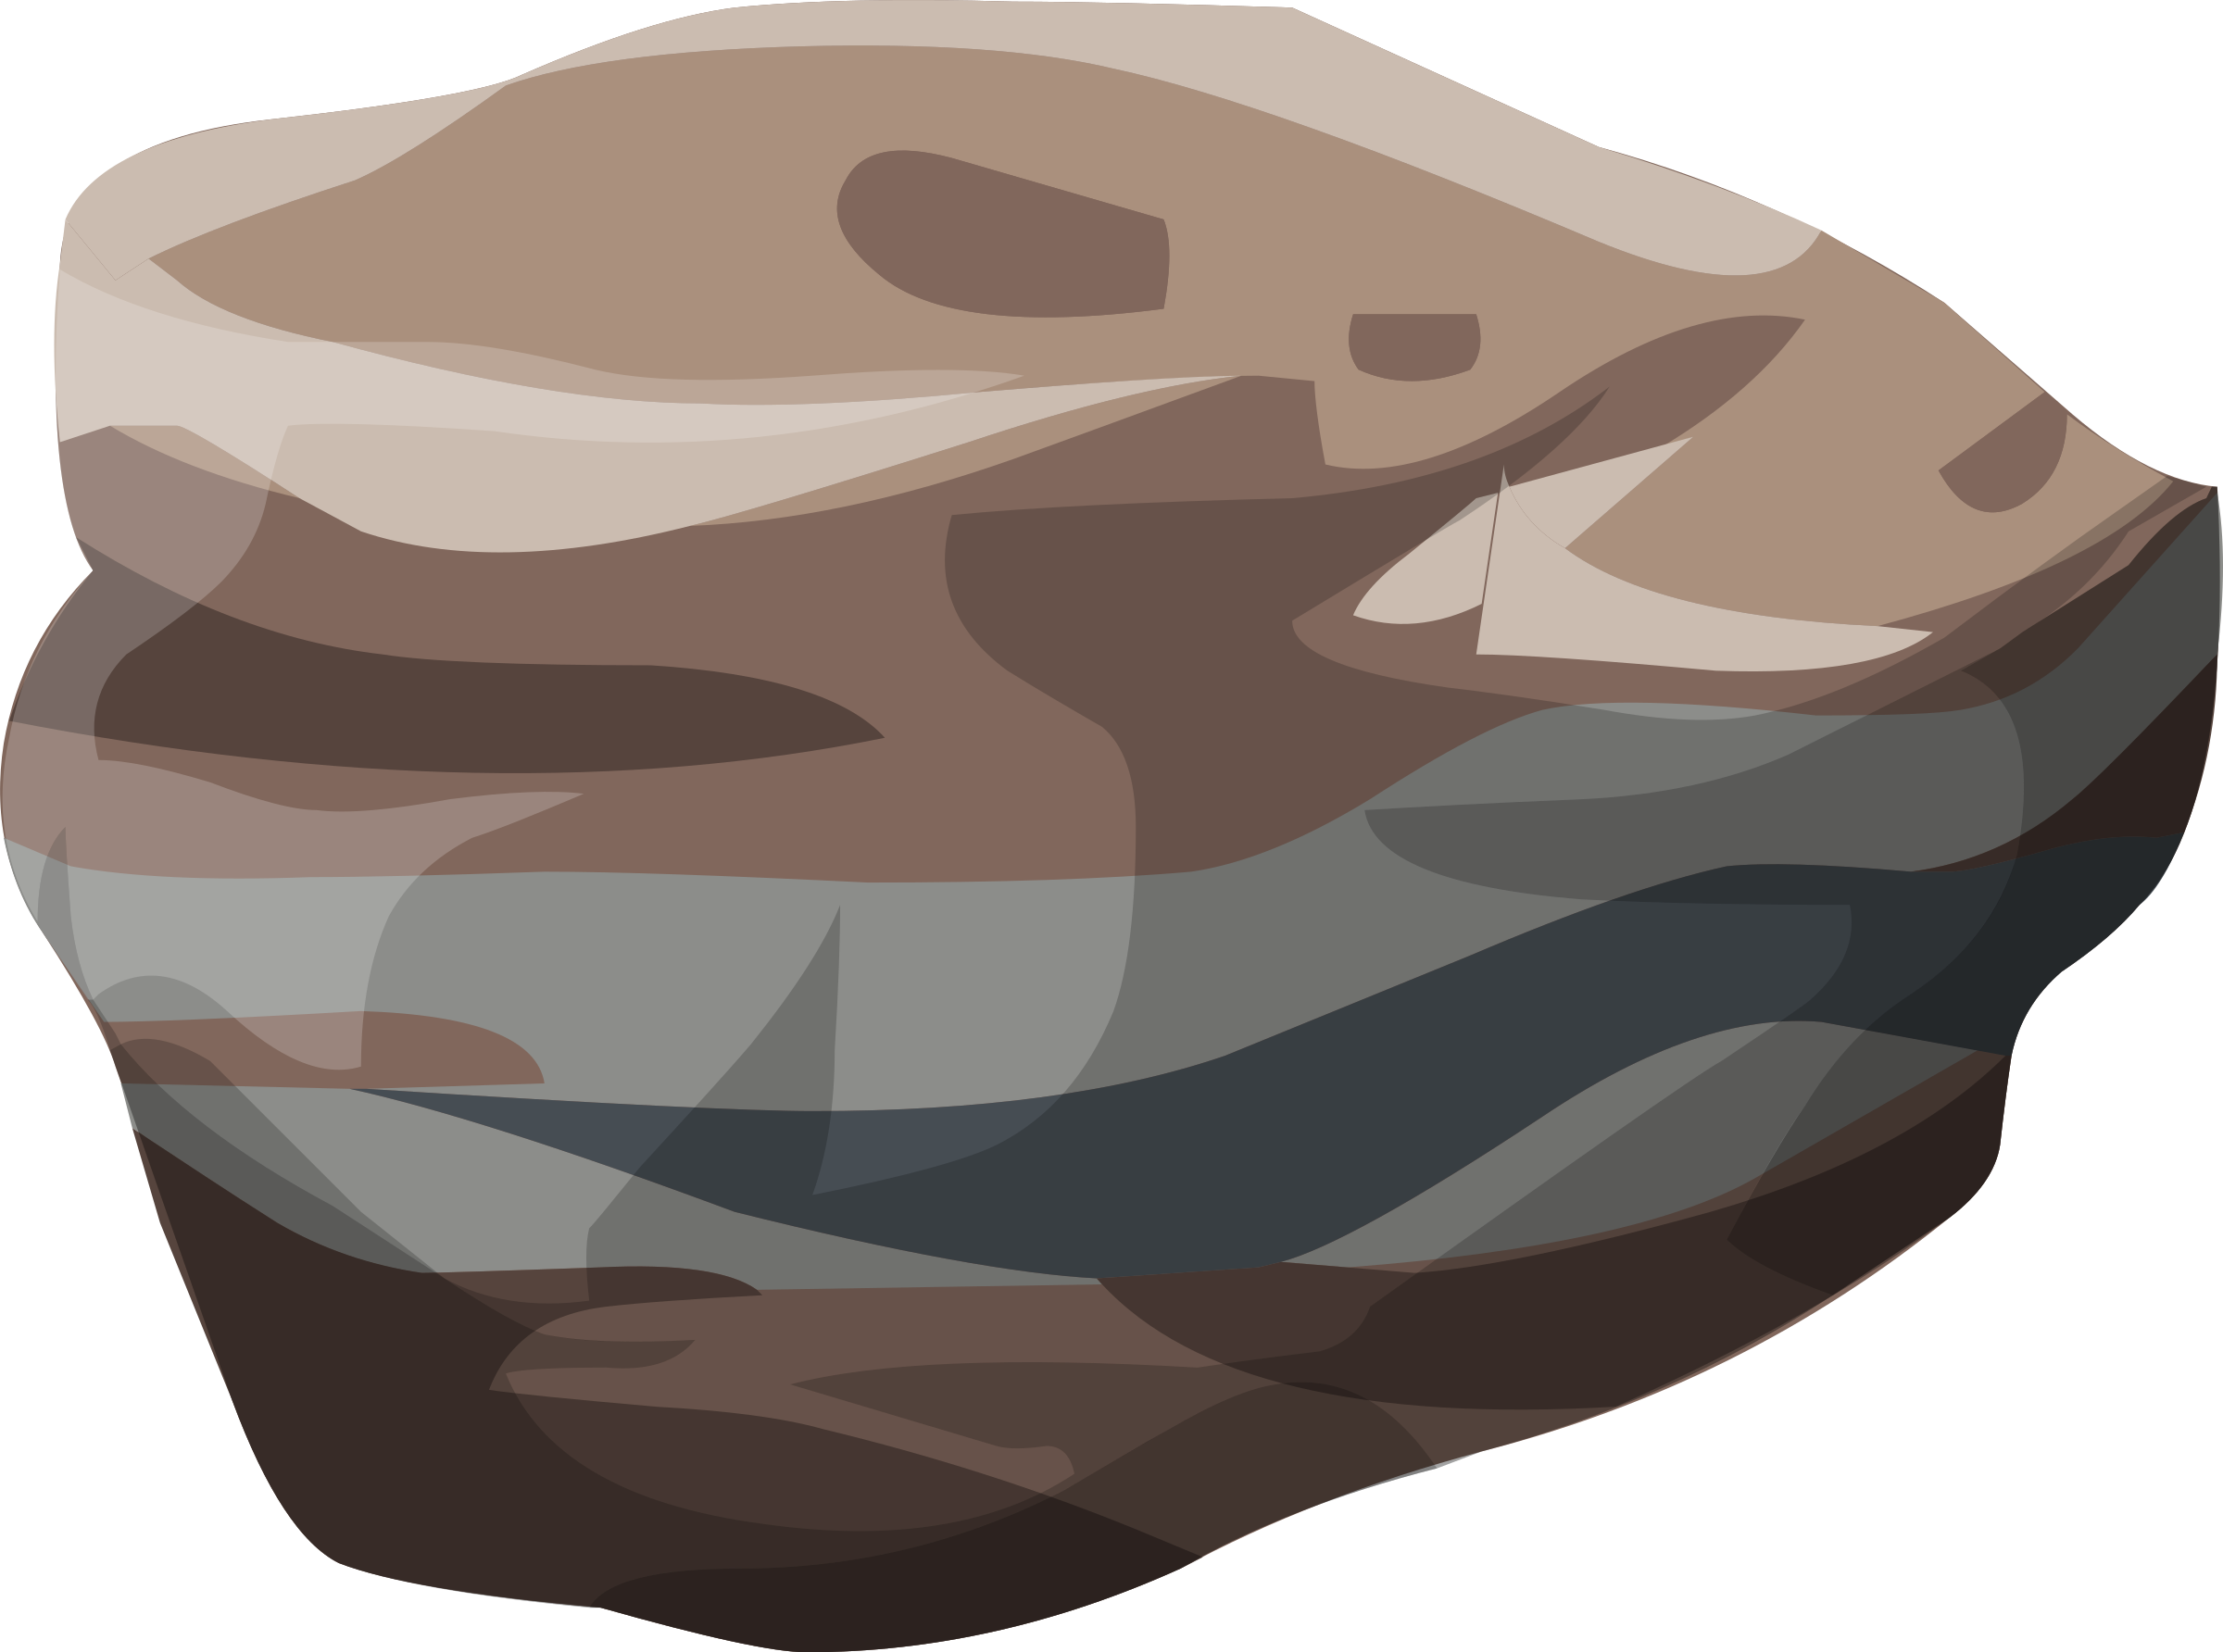 collection of sedimentary. Shell clipart sea rock